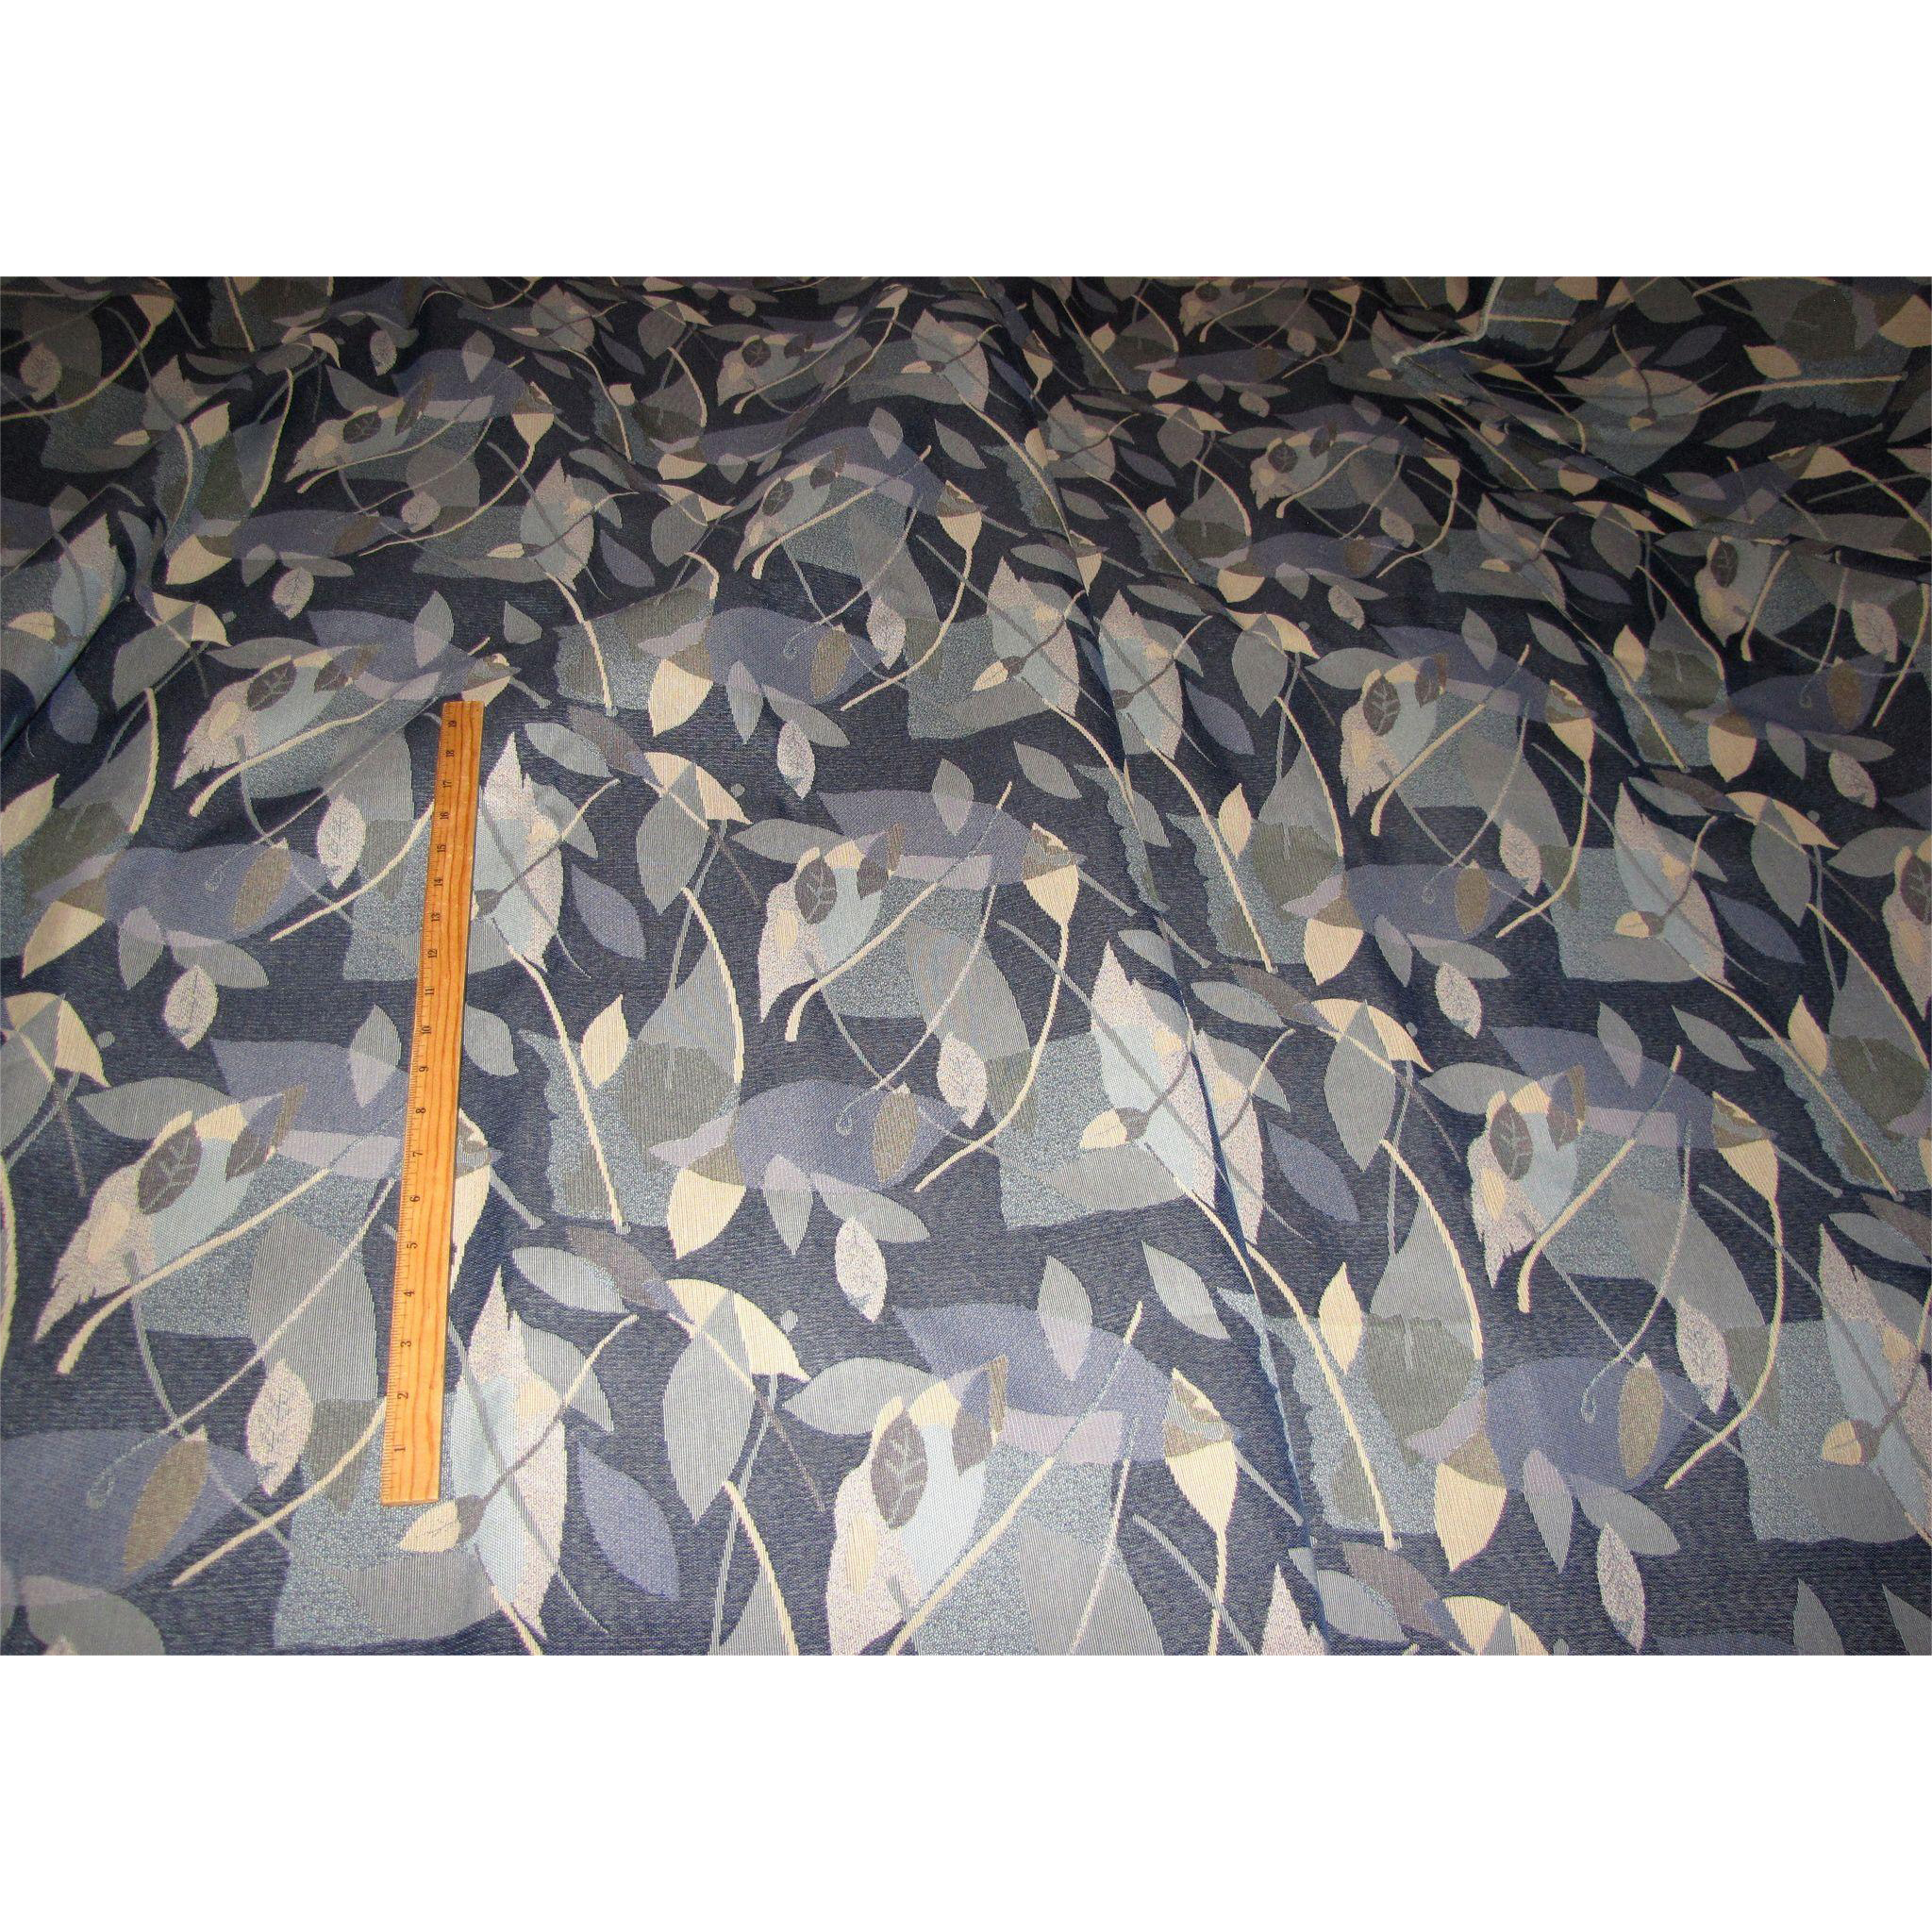 12 Yds + VERY Heavy Woven Upholstery Fabric